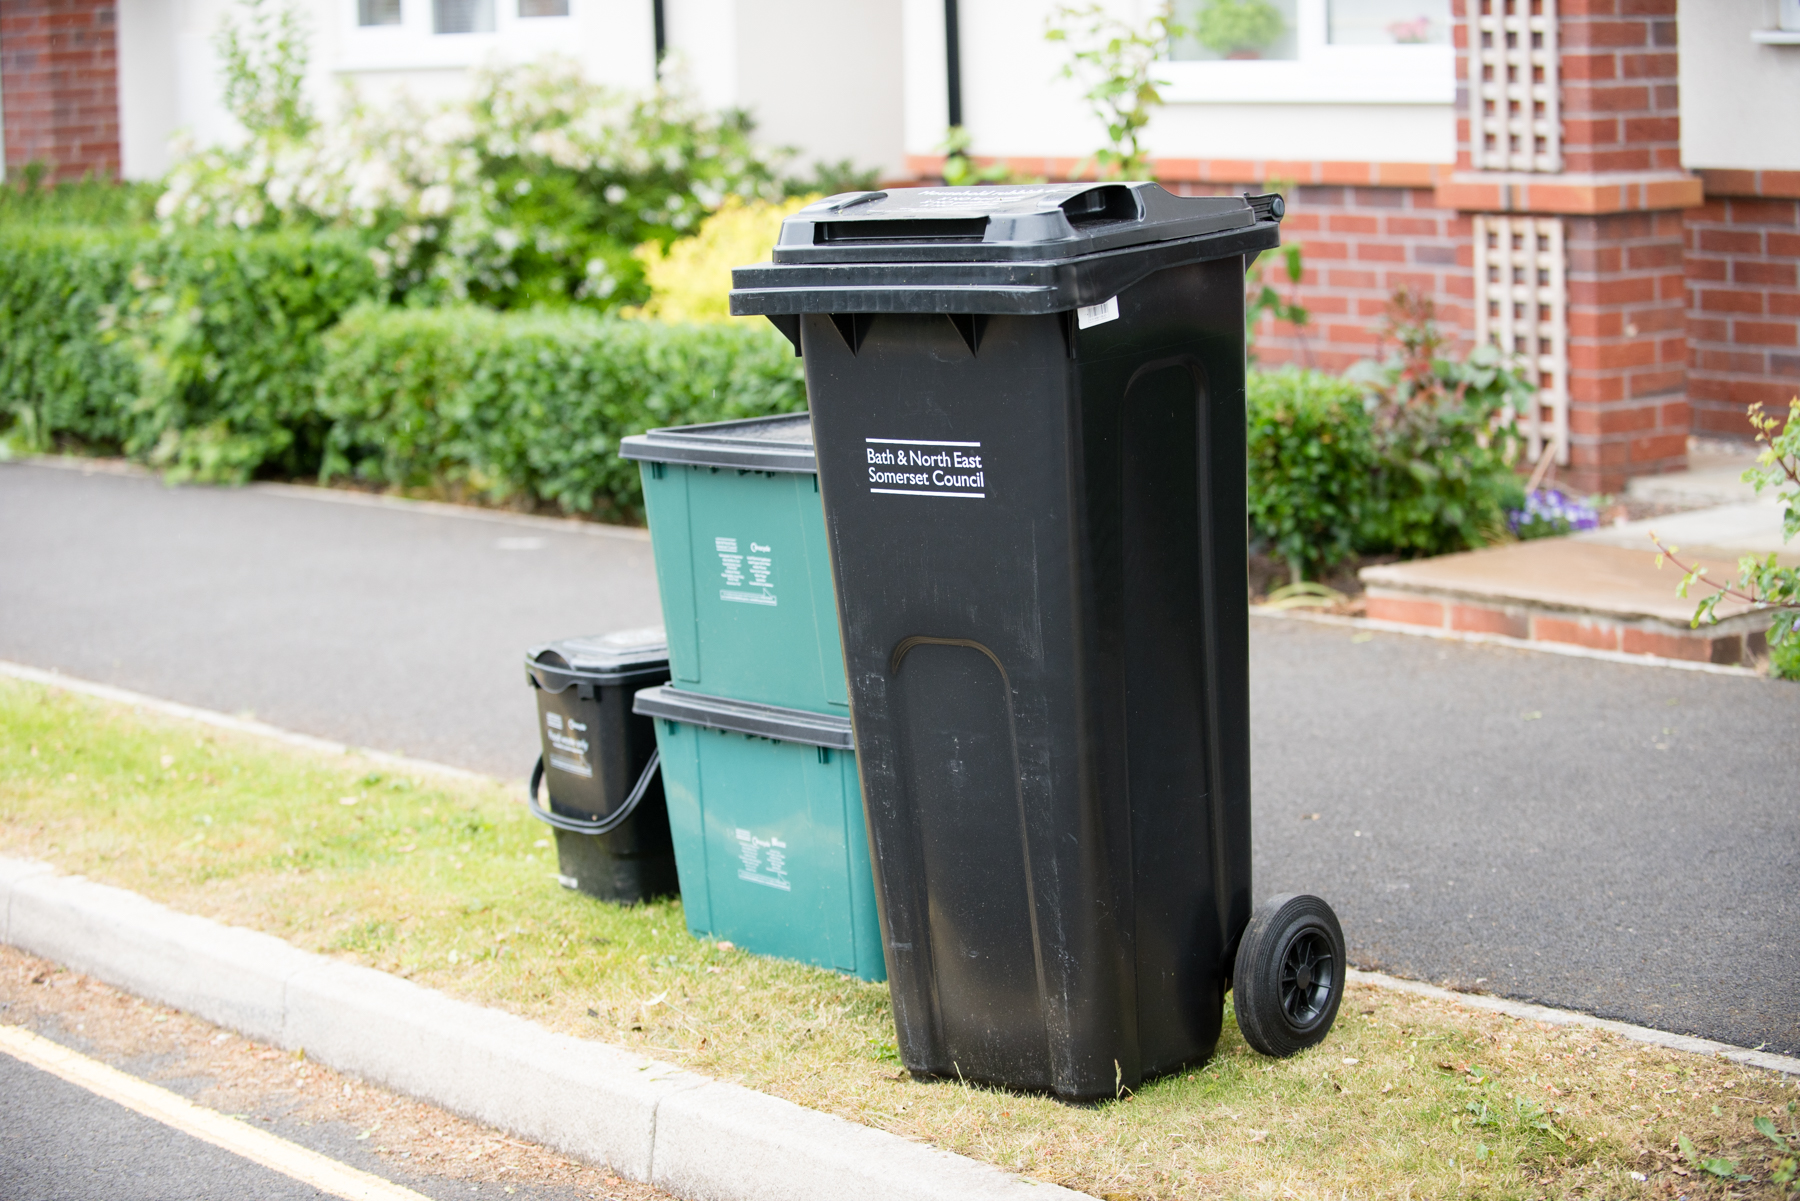 Lib Dems' failings on waste issues show 'staggering ineptitude'